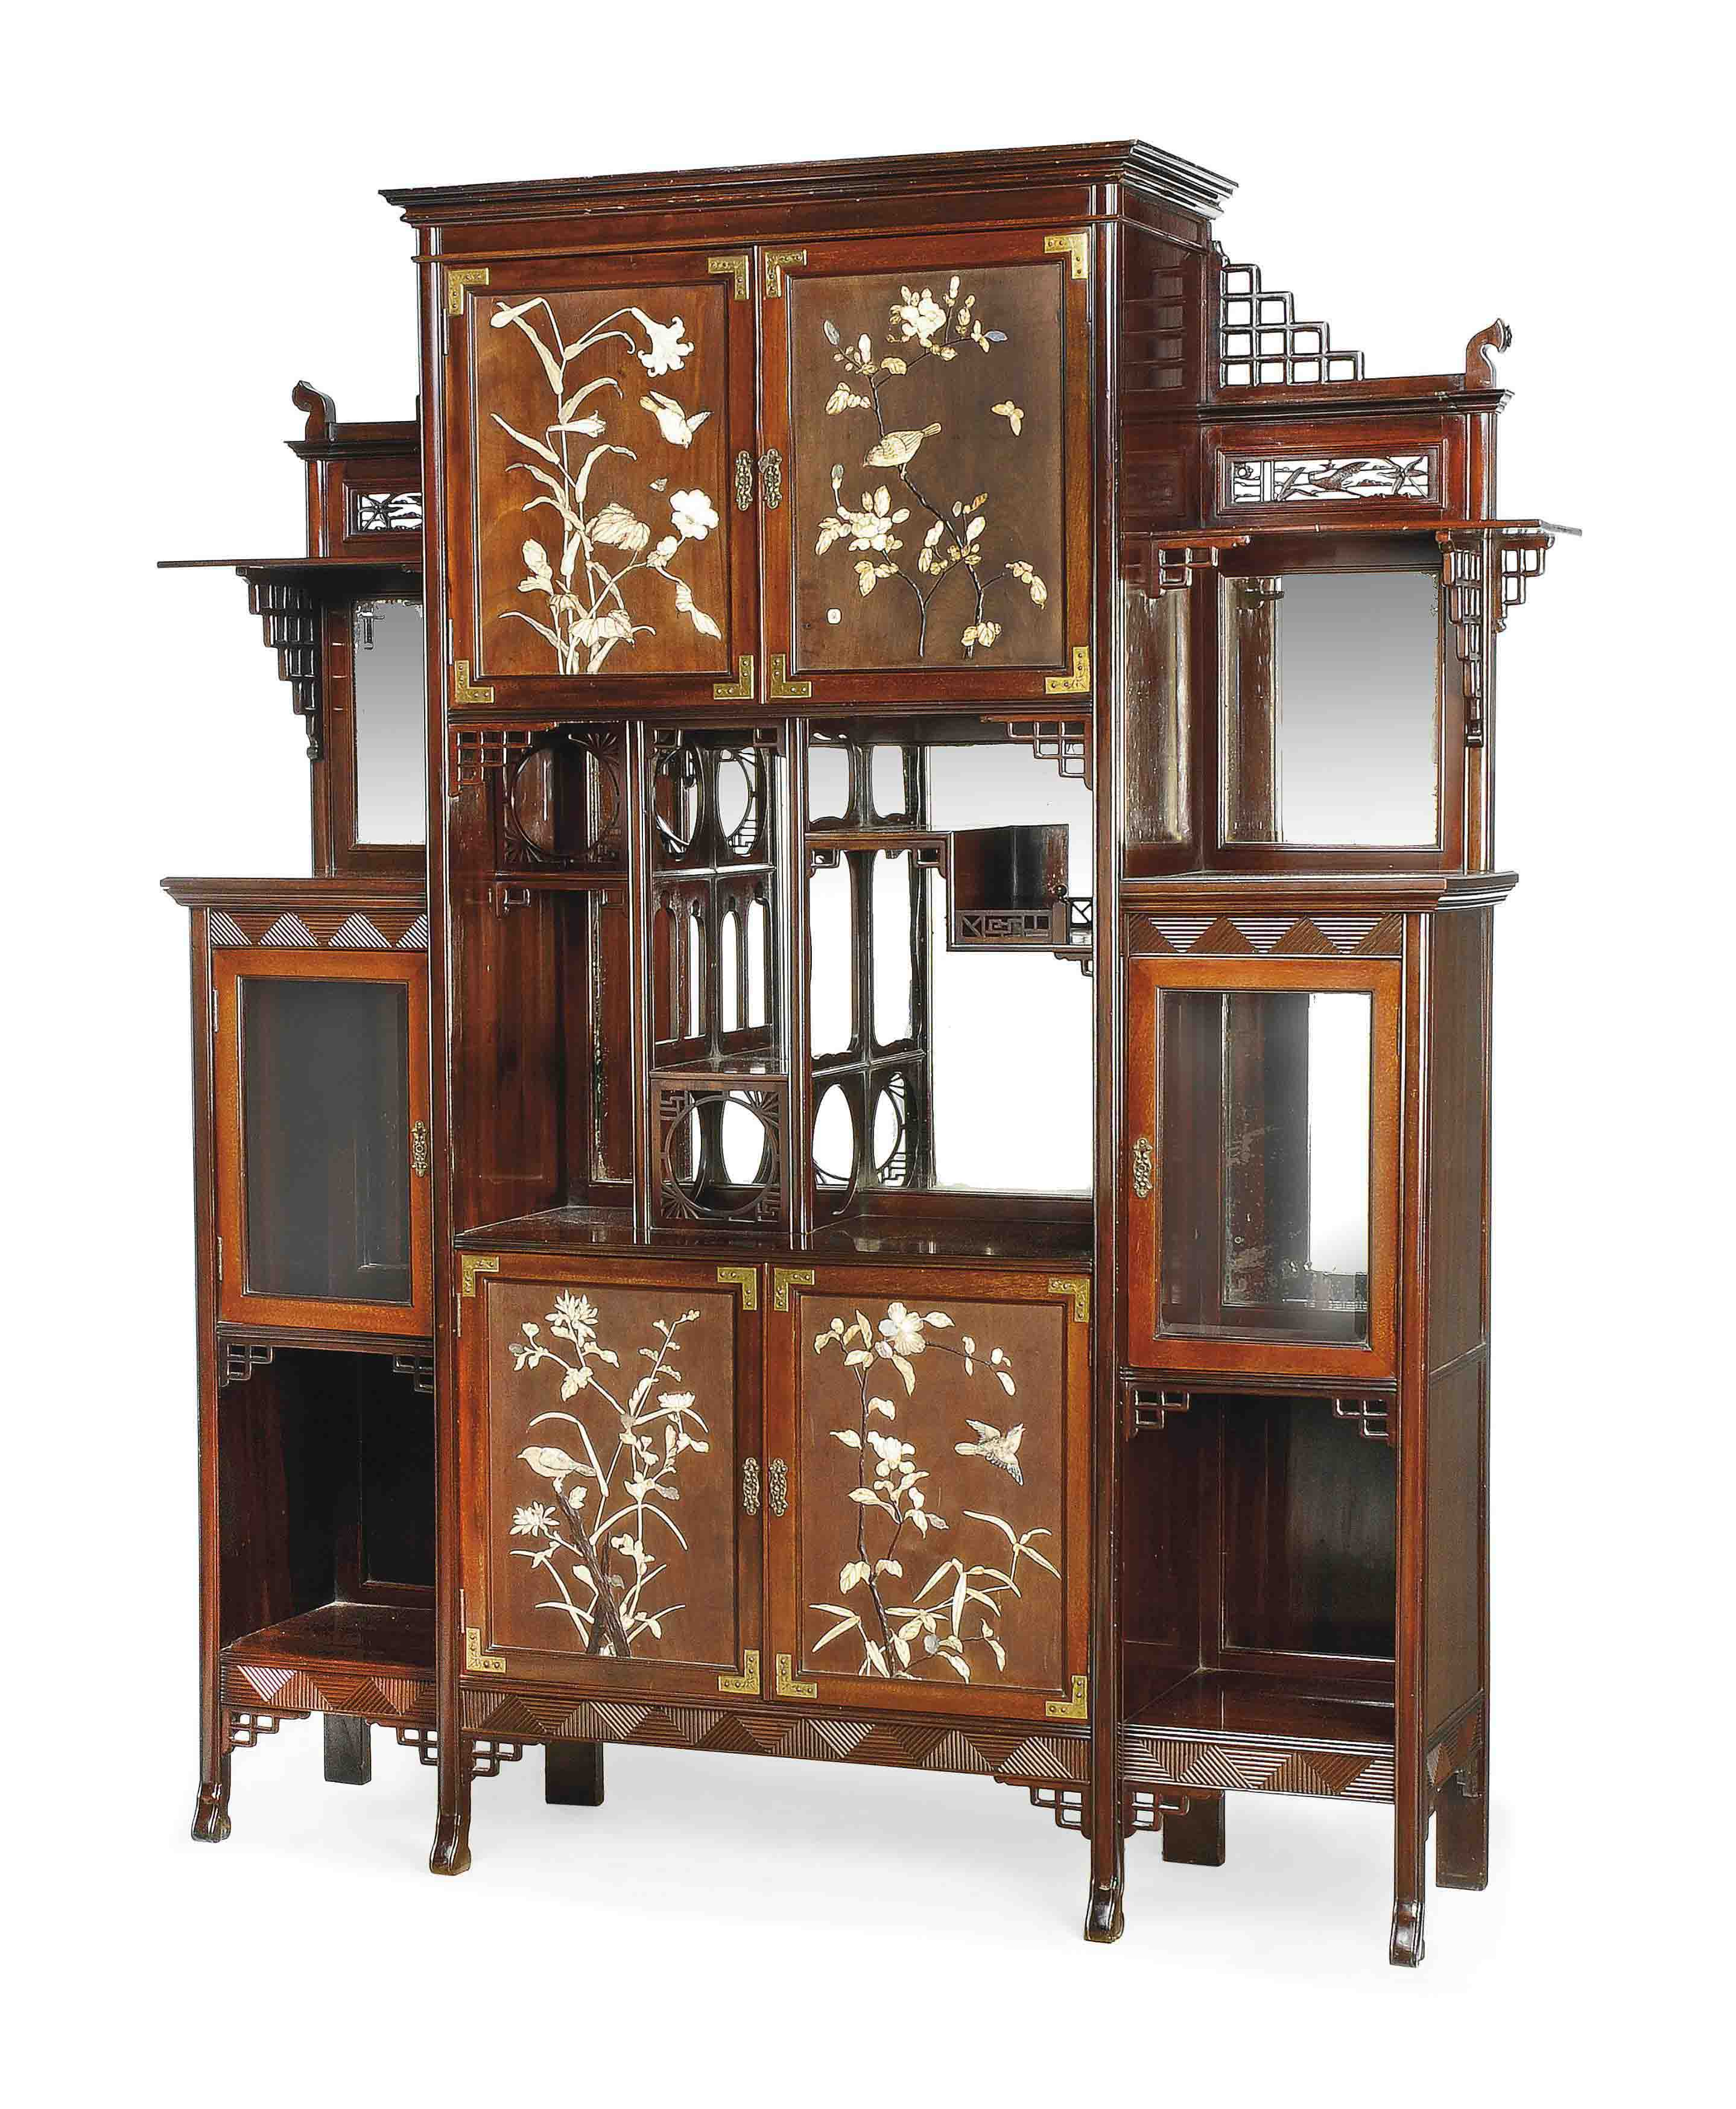 Unique Mother Of Pearl Cabinet: AN ANGLO-JAPANESE MOTHER-OF-PEARL, BONE AND IVORY INLAID